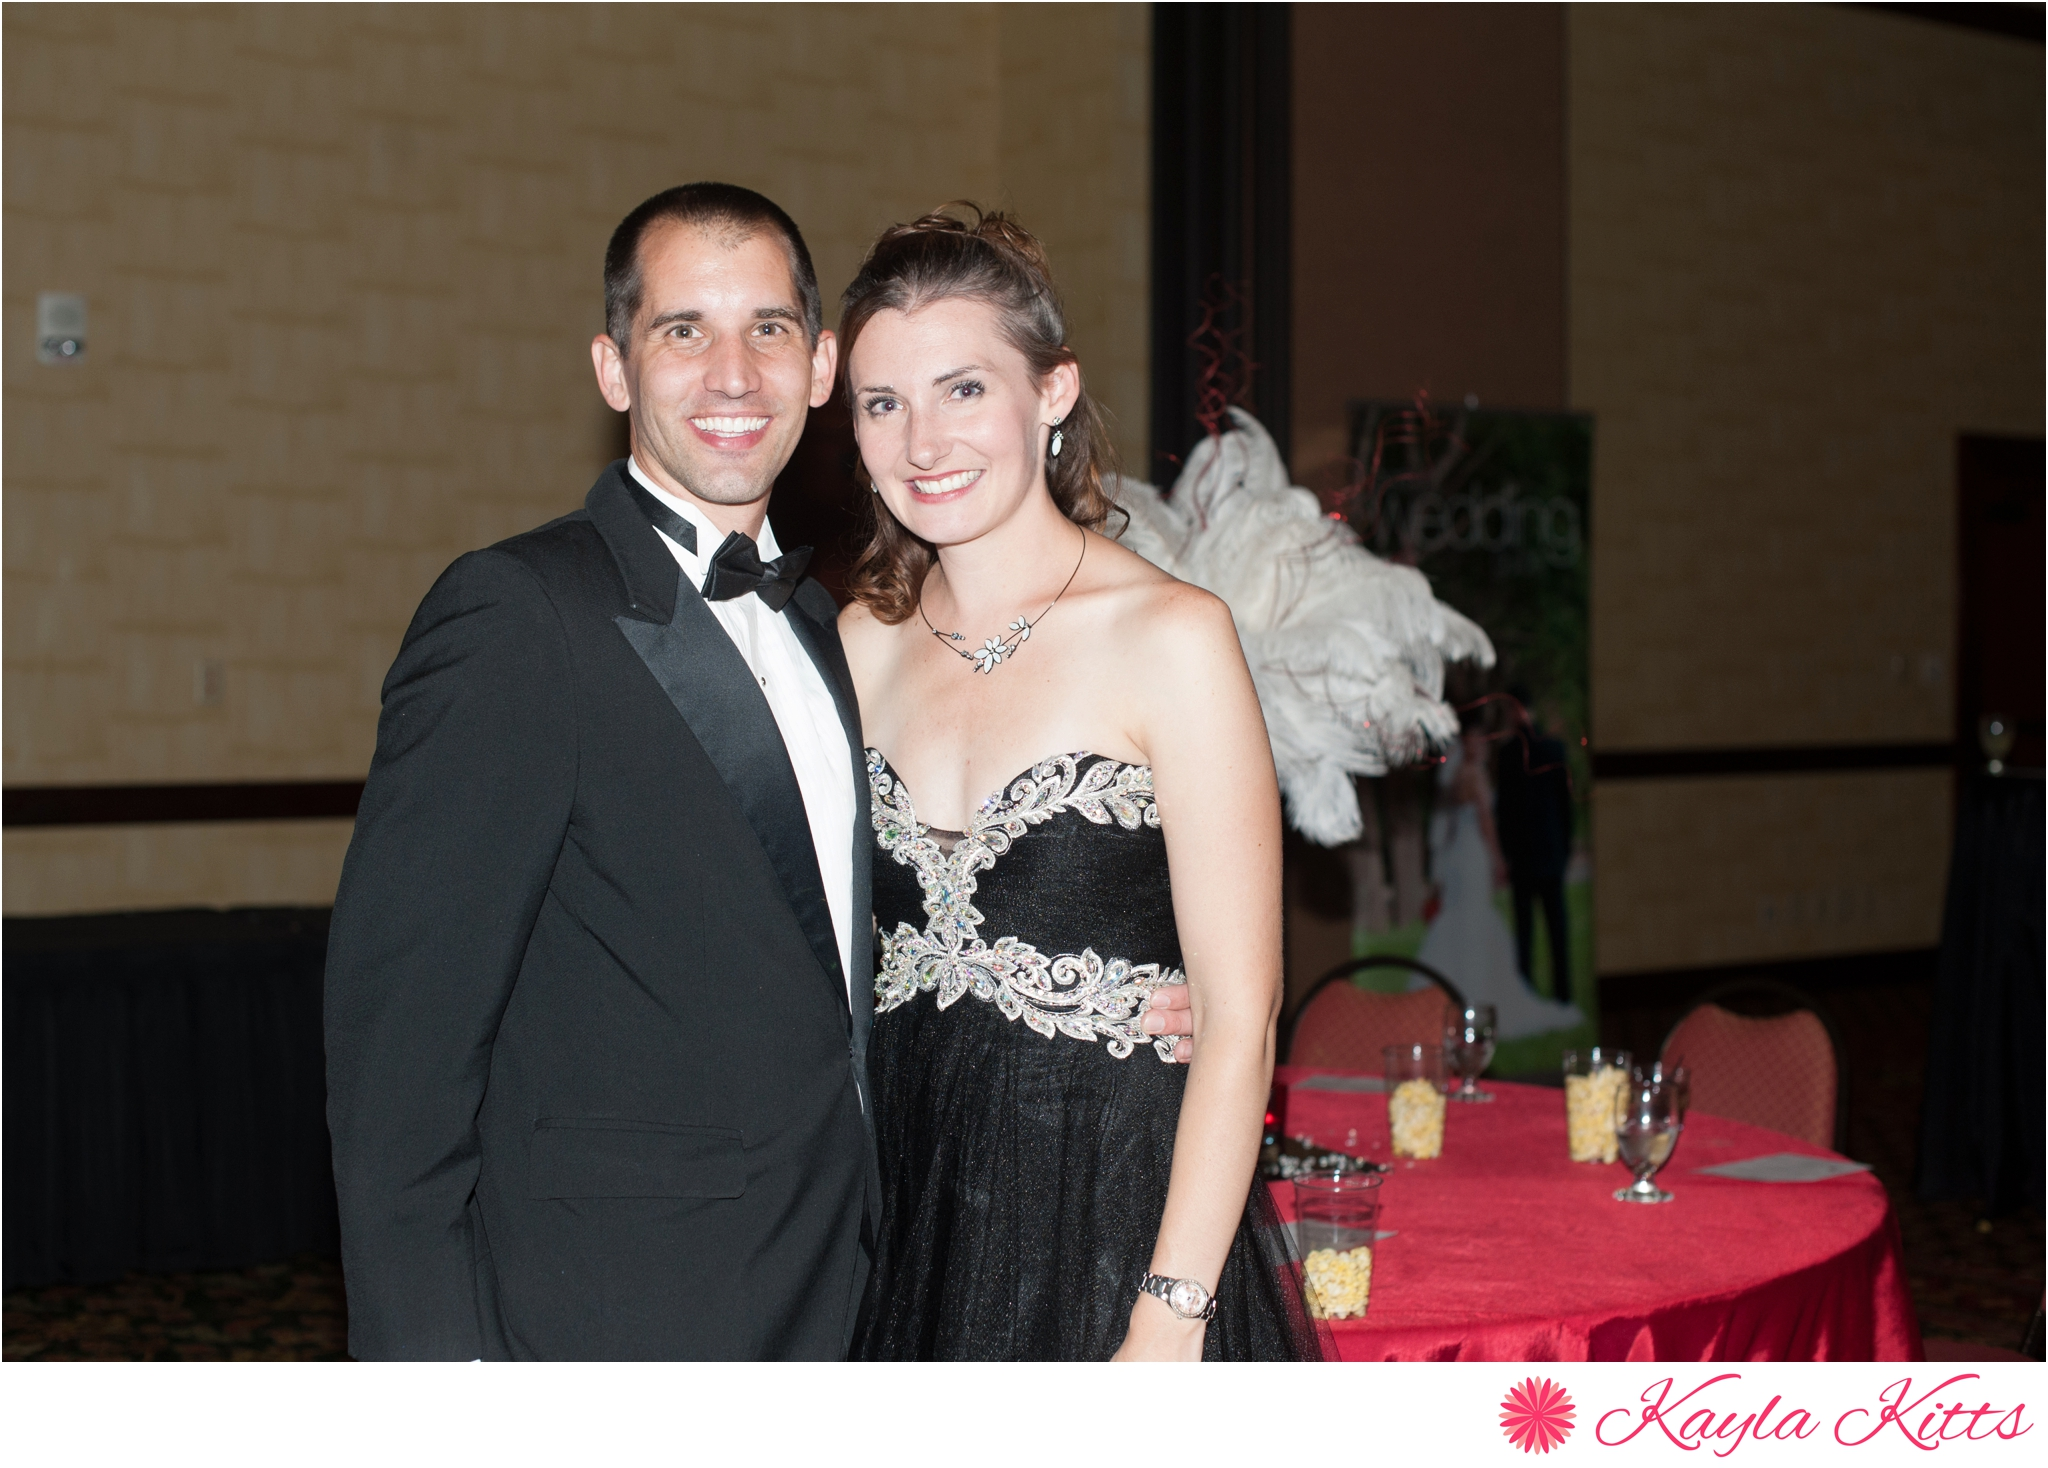 kayla kitts photography - perfect wedding guide - client appreciation party - albuqueruqe marriott_0017.jpg